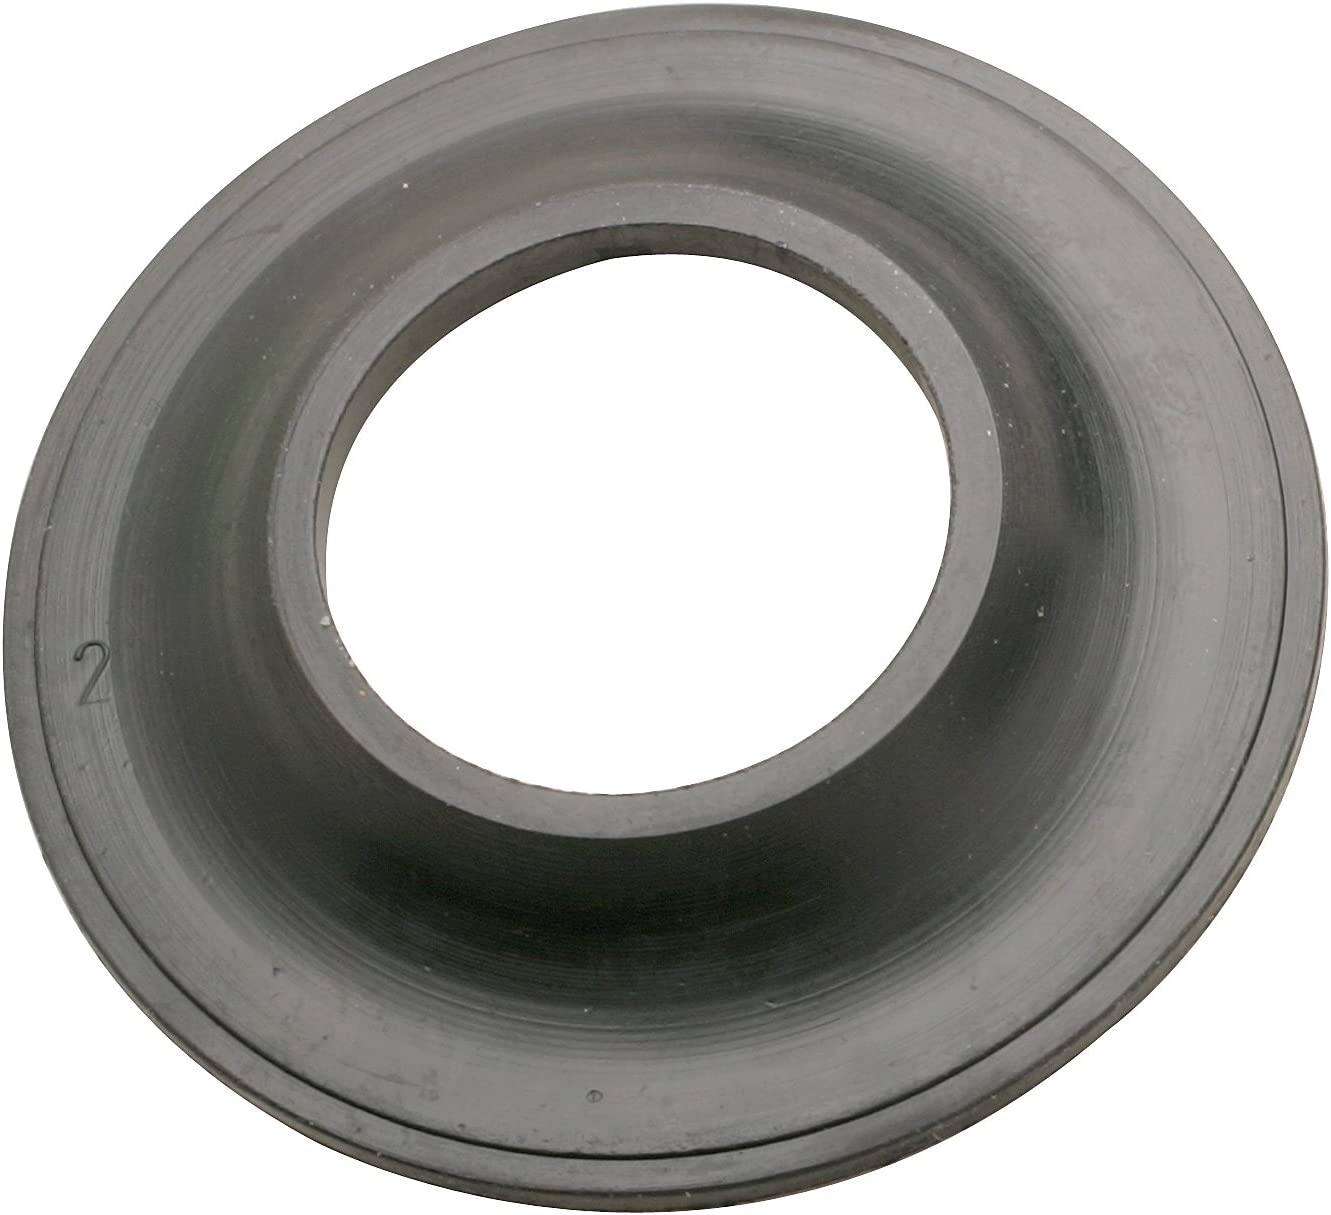 Max 52% OFF Plumb Super sale period limited Pak PP863-11 Rubber Washer System Lok Foot for Stop